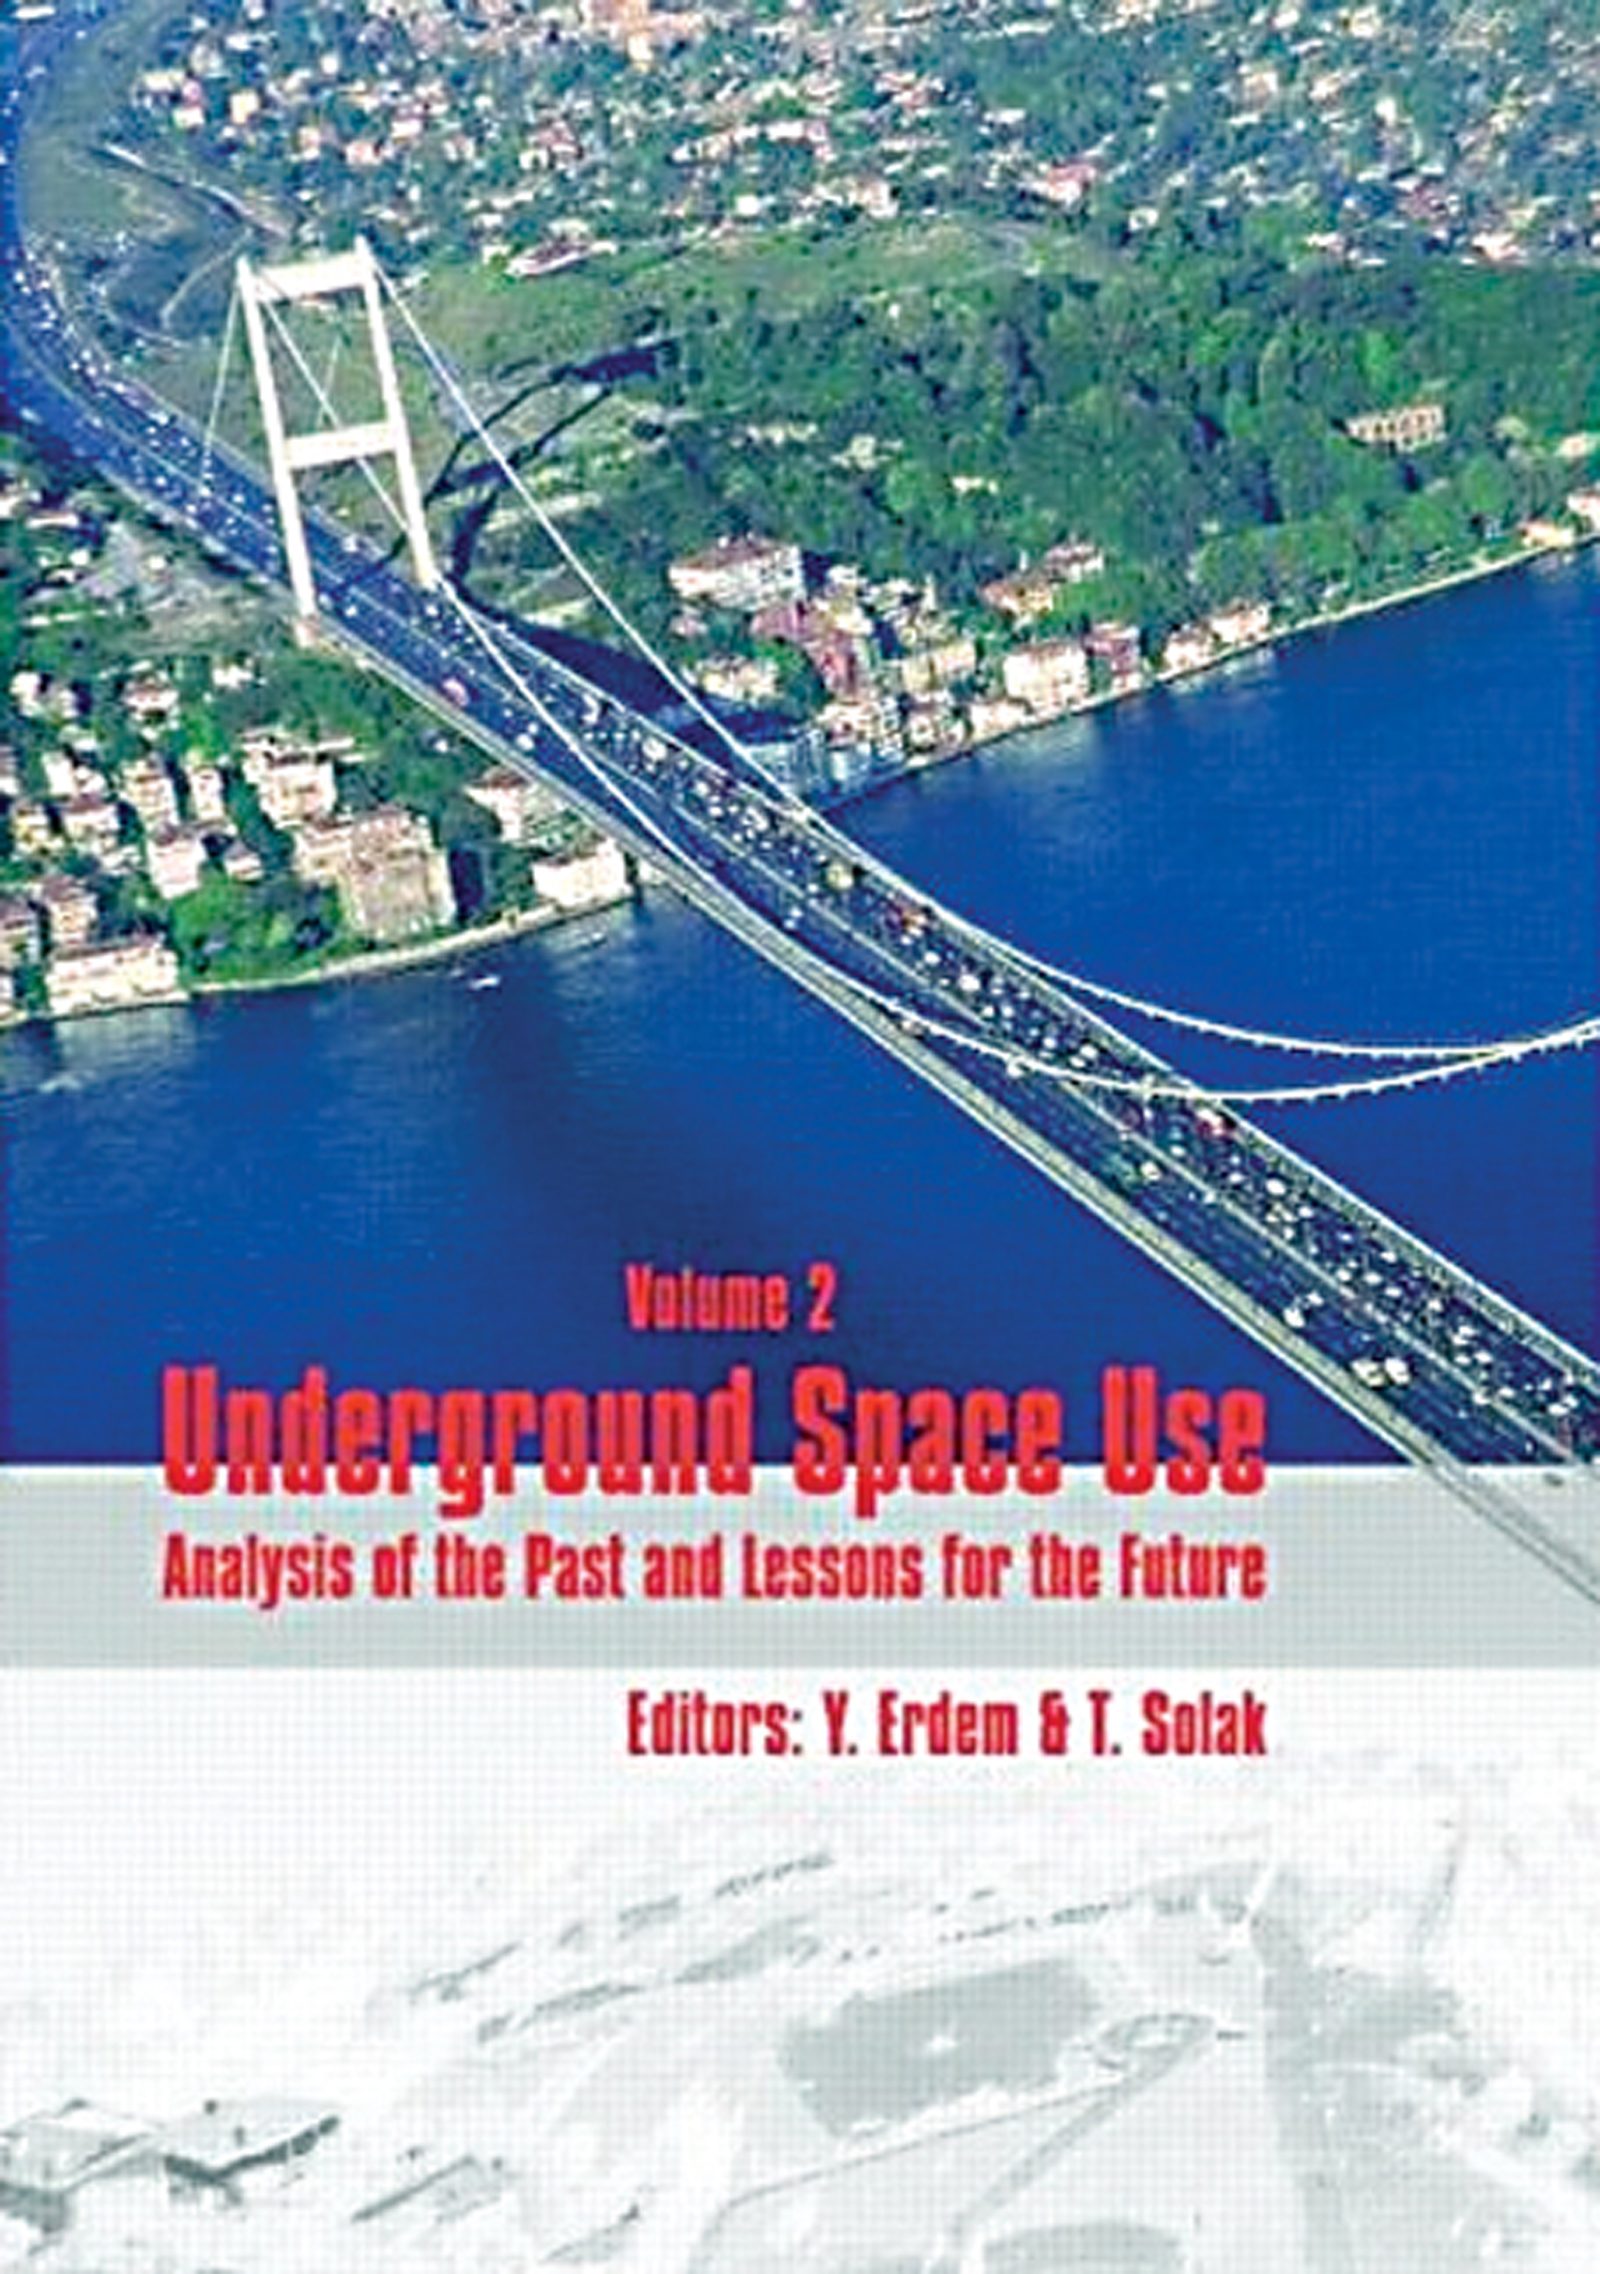 A study on the development of MI (Multiple Index) System for risk assessment of tunnelling in urban subway